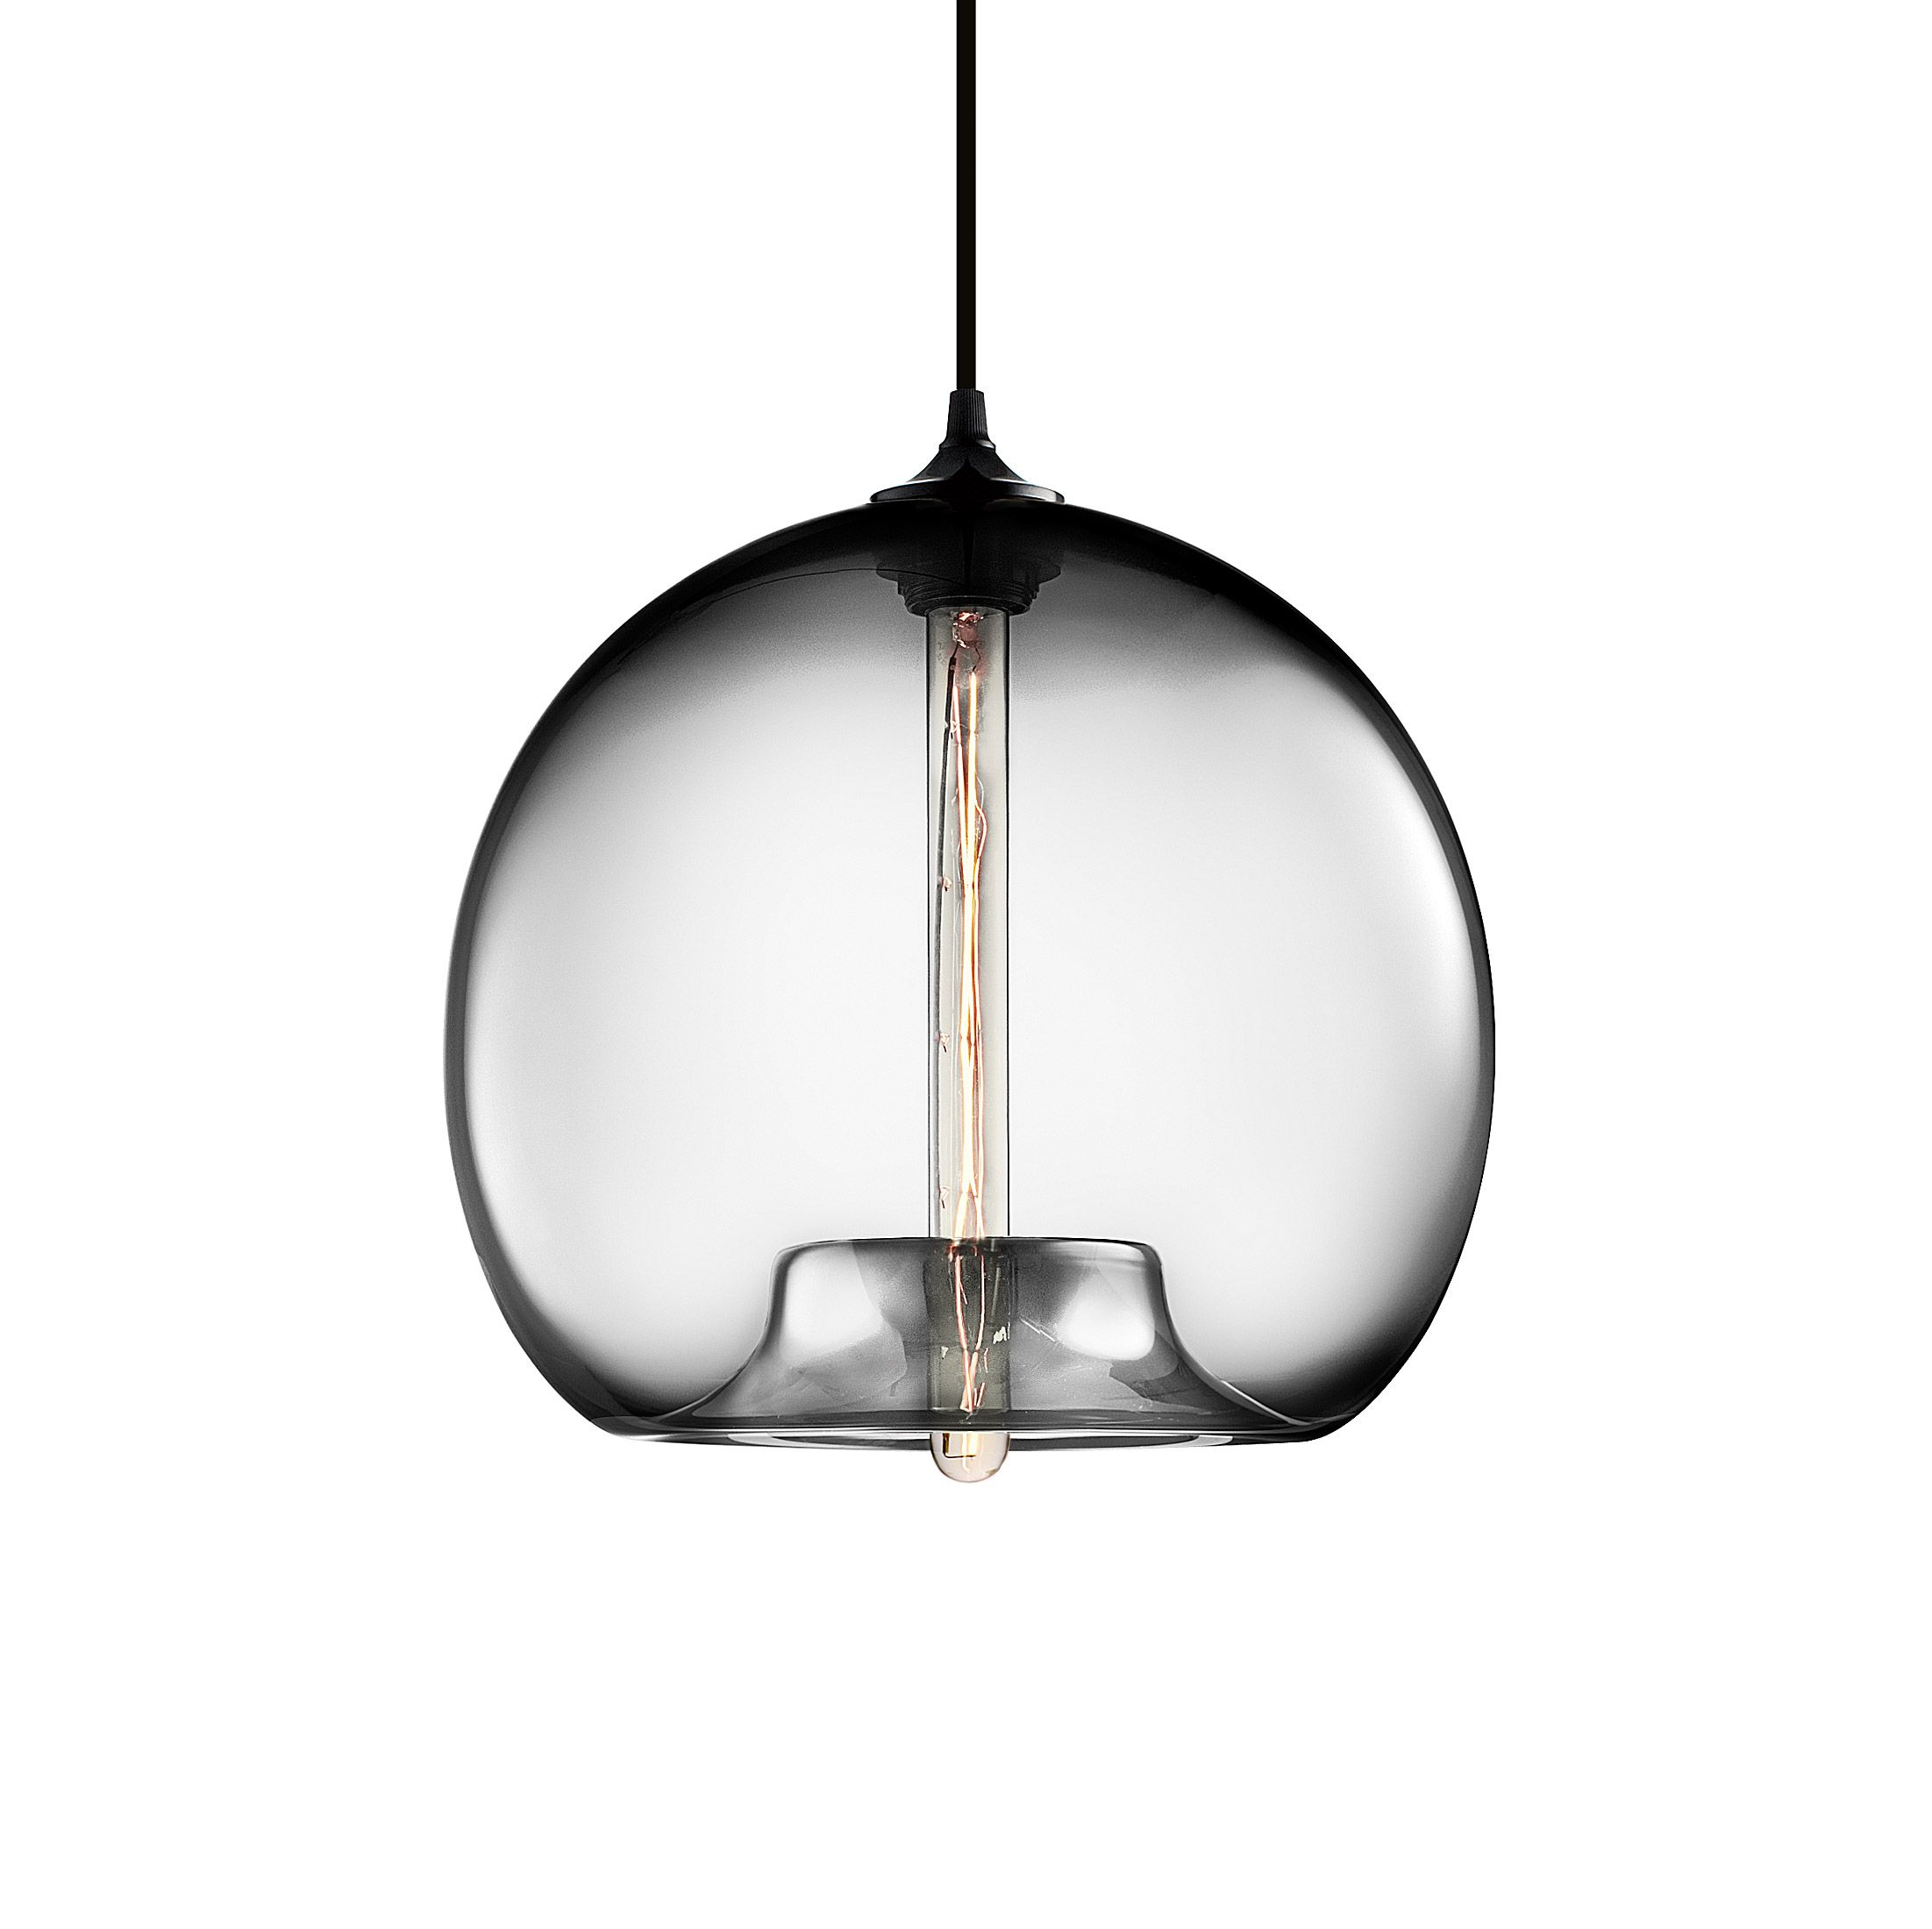 sputnik lighting industrial modern geometric listing fullxfull nickel century chrome il light ceiling lamp chandelier mid